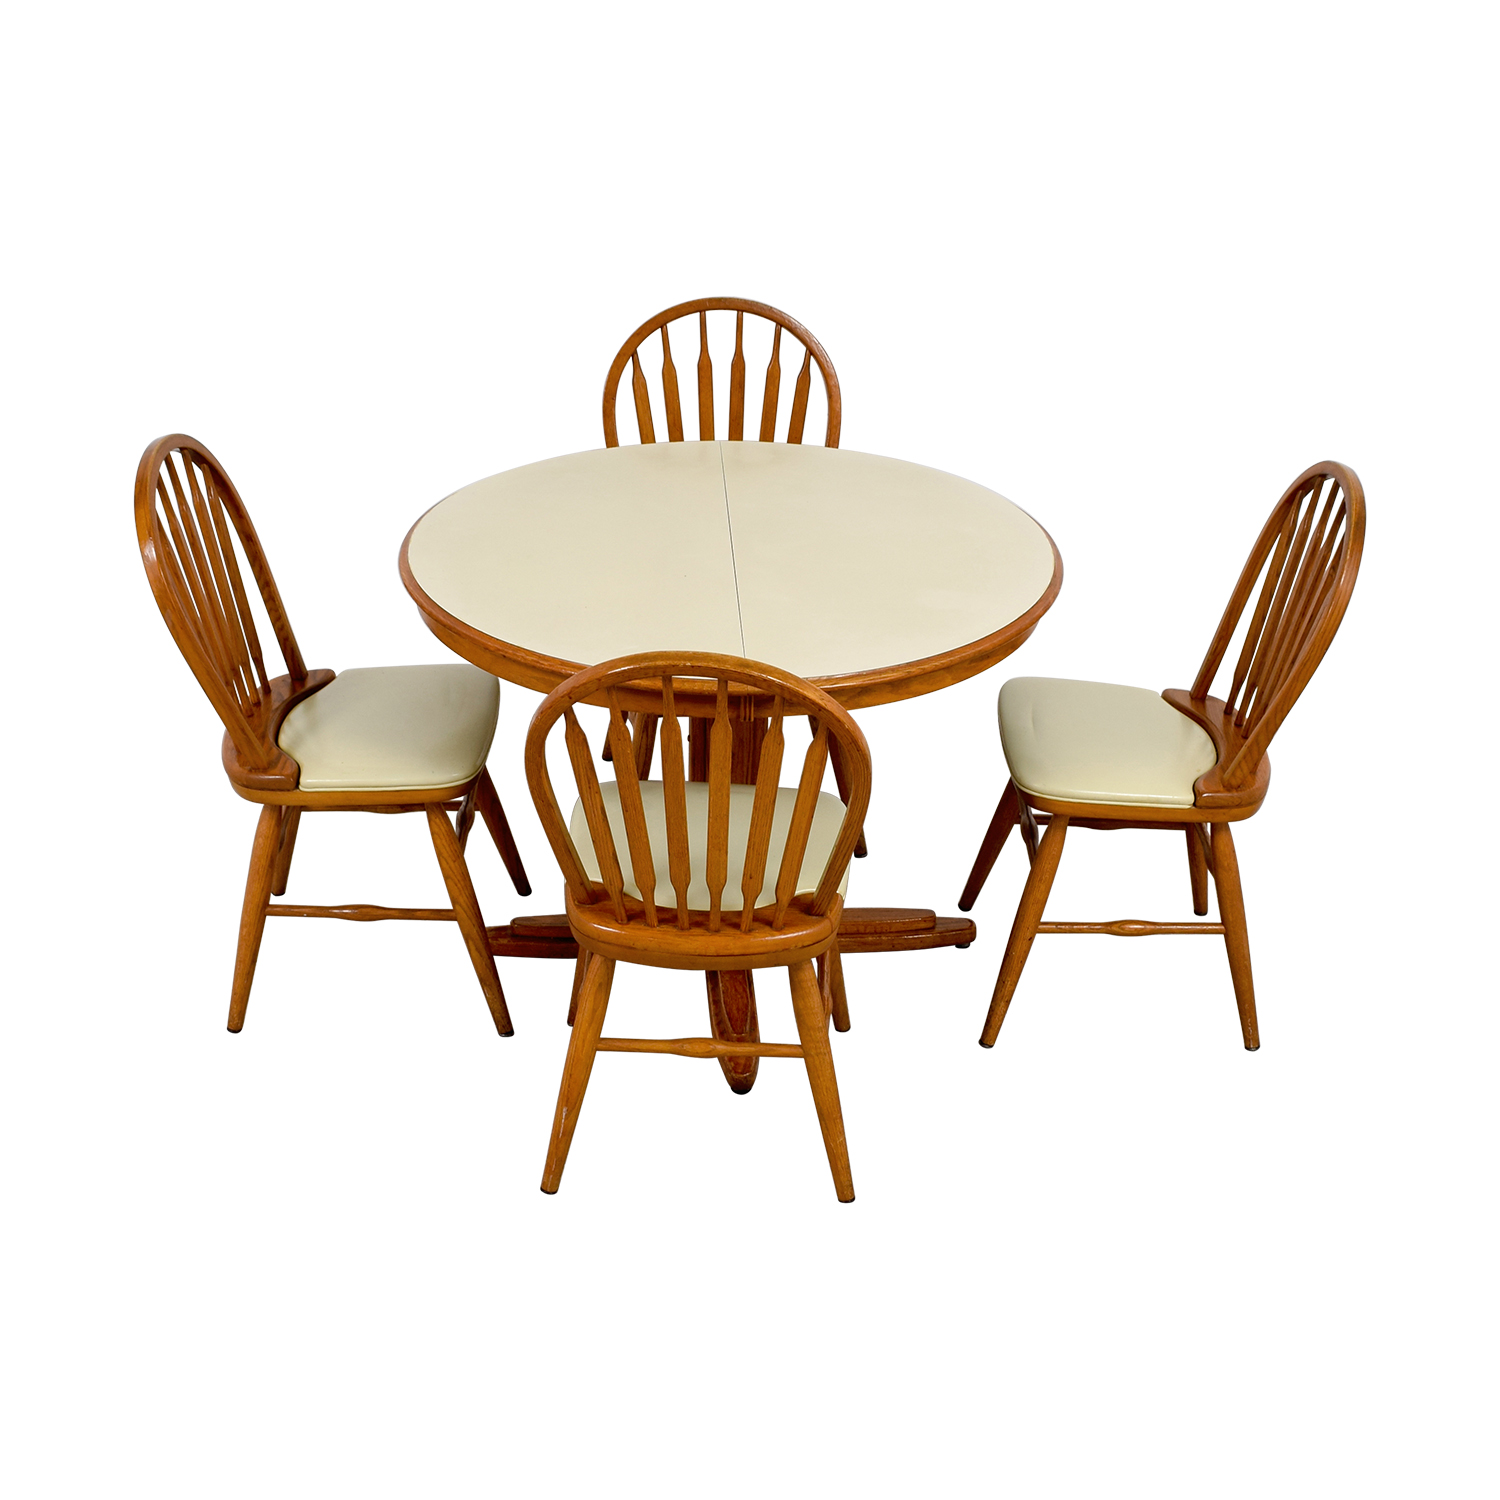 White Wood Dining Set: White & Wood Dining Set With Extendable Leaf